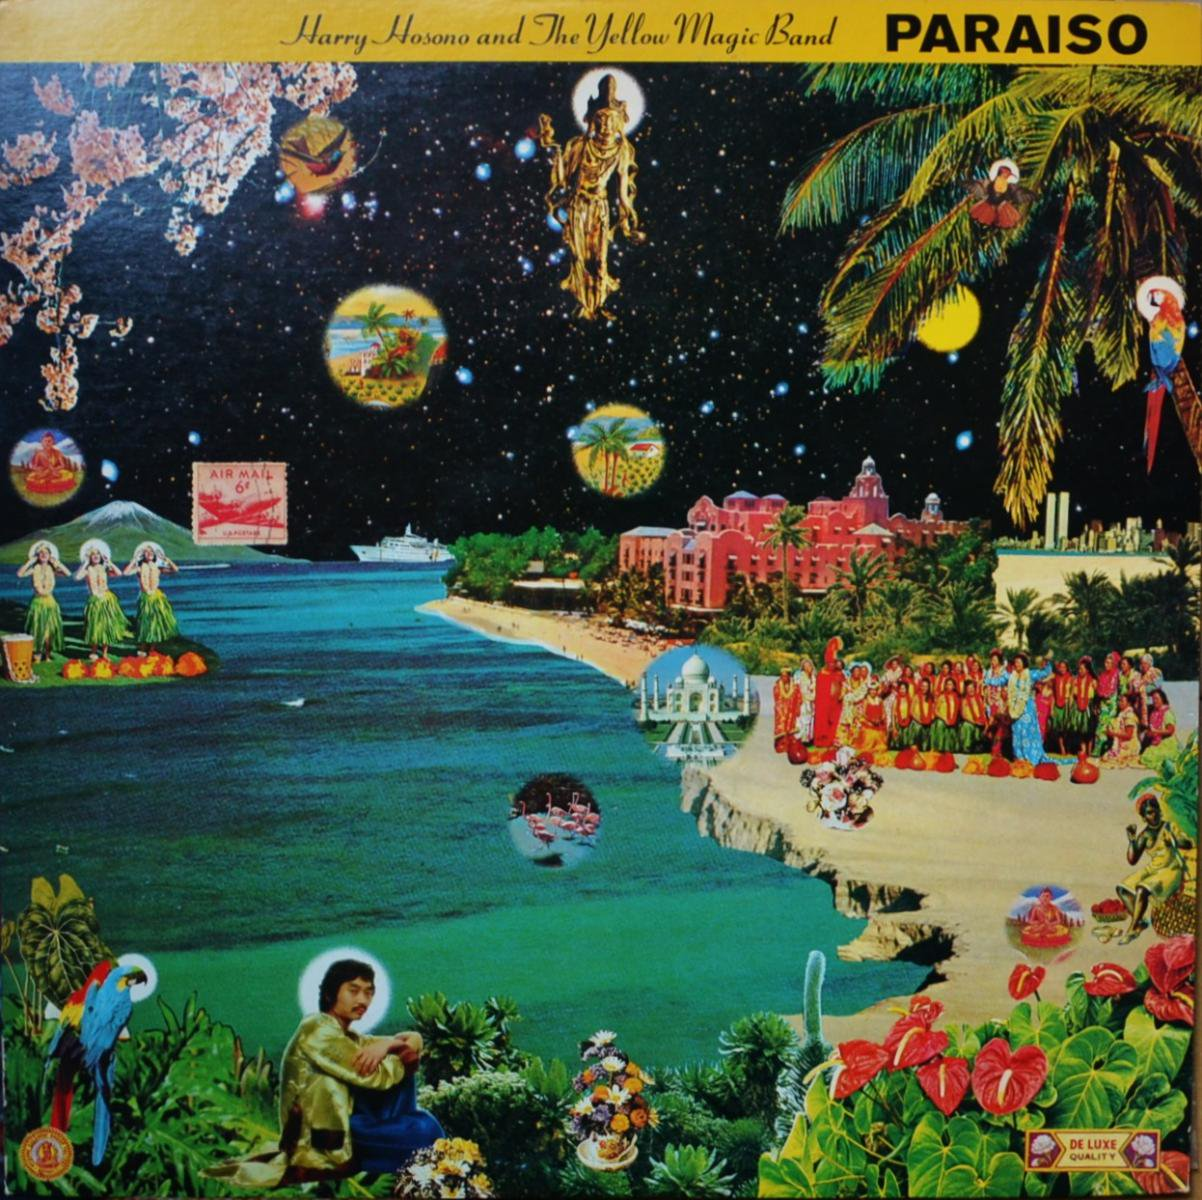 細野晴臣 HARUOMI HOSONO (HARRY HOSONO AND THE YELLOW MAGIC BAND) / はらいそPARAISO (LP)